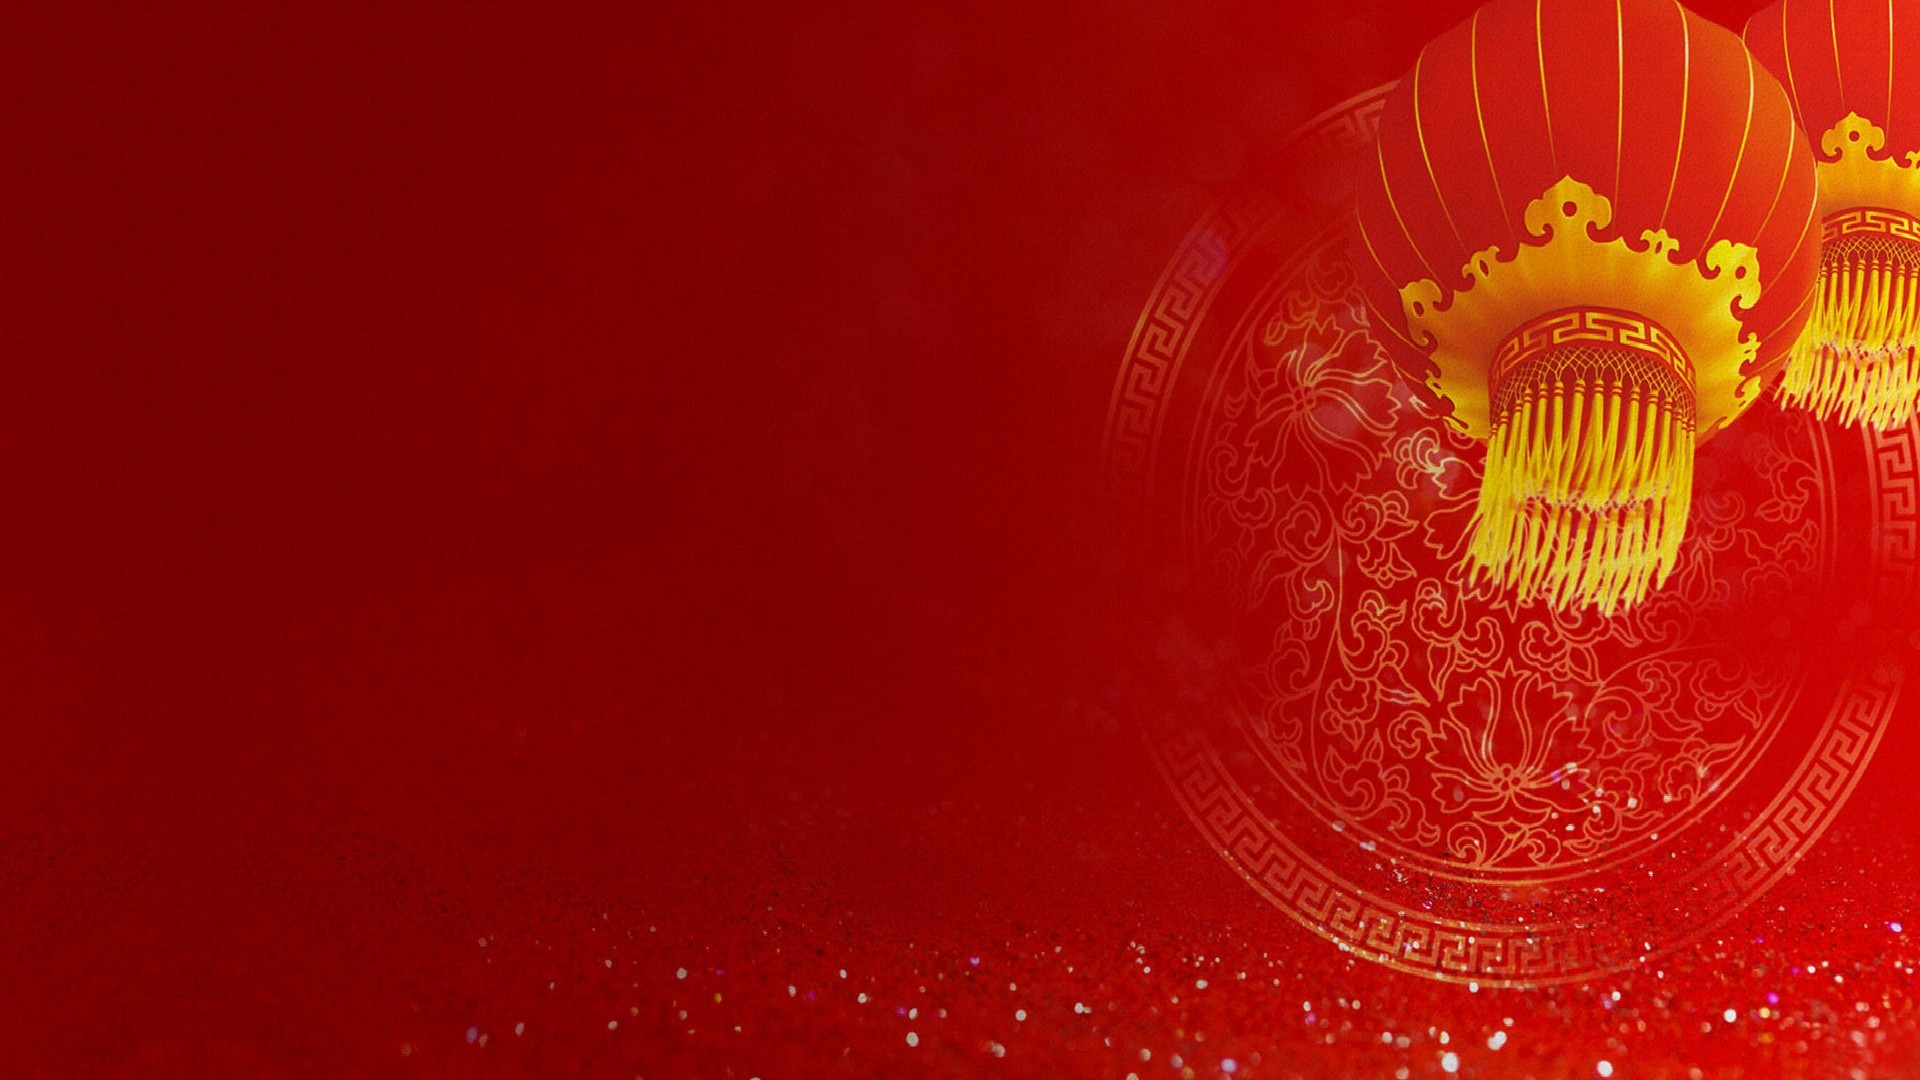 chinese new year 2016 desktop wallpaper